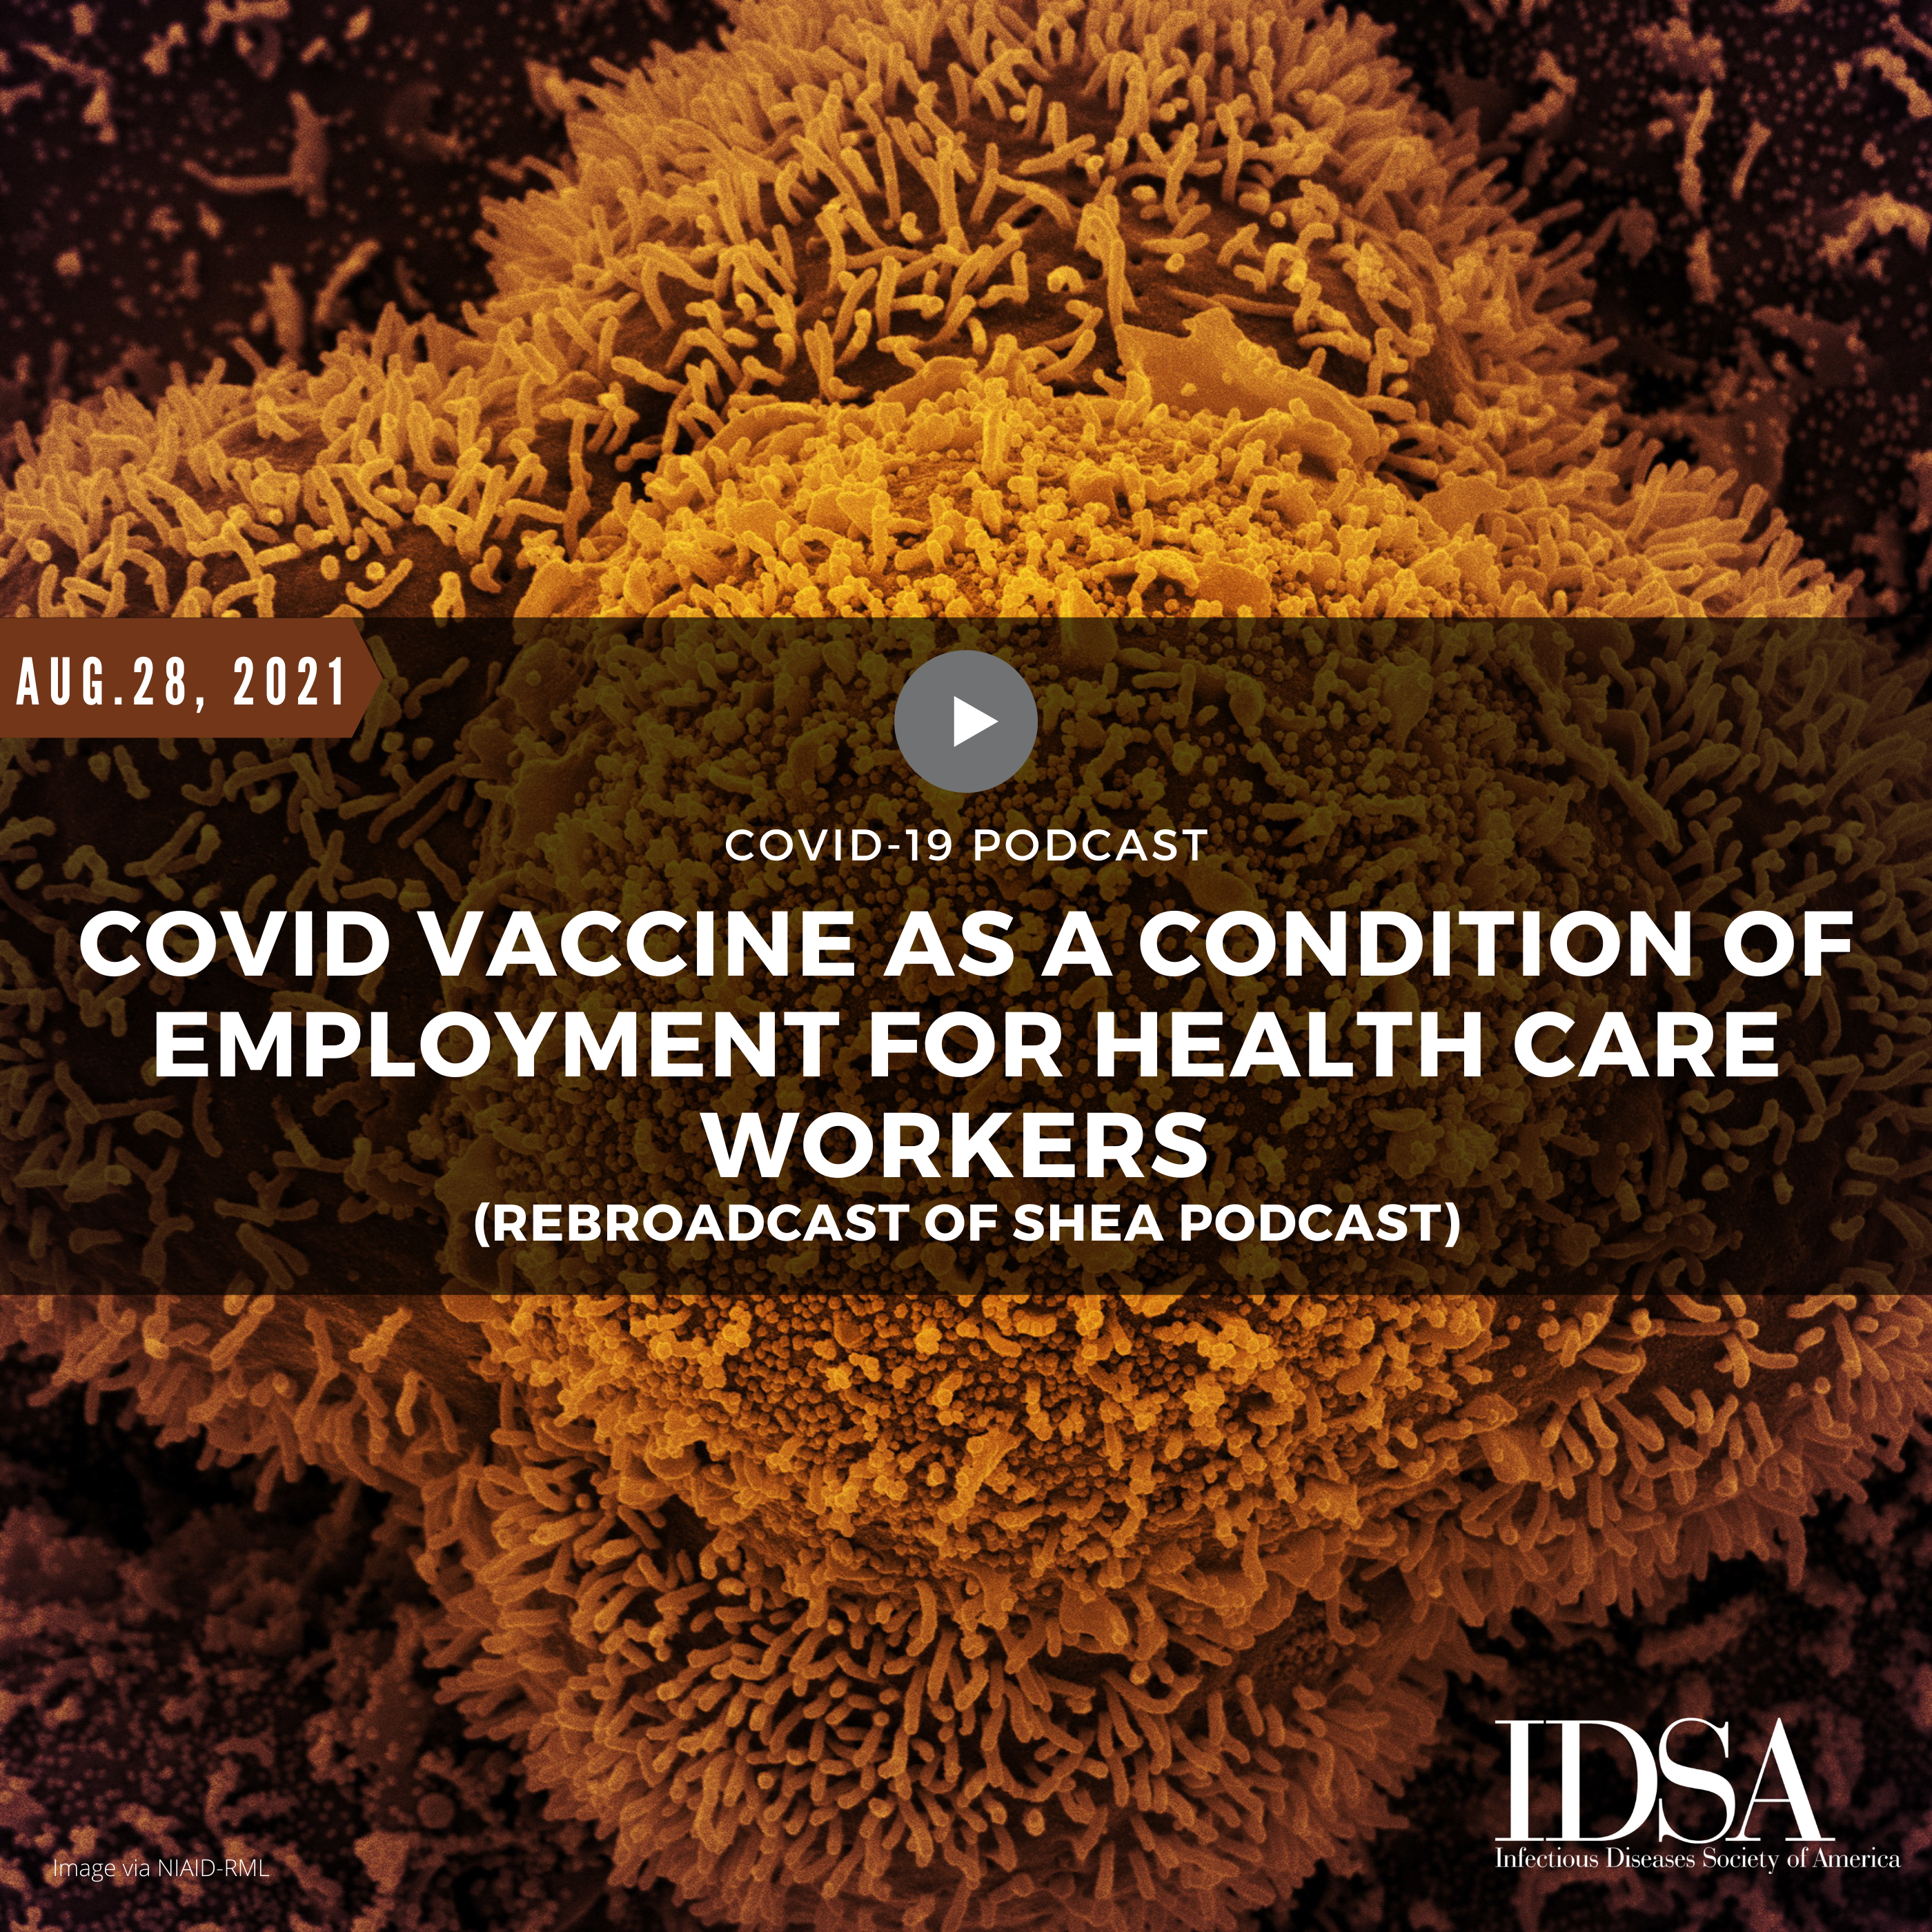 COVID Vaccine as a Condition of Employment for Health Care Workers (Rebroadcast of SHEA Podcast)